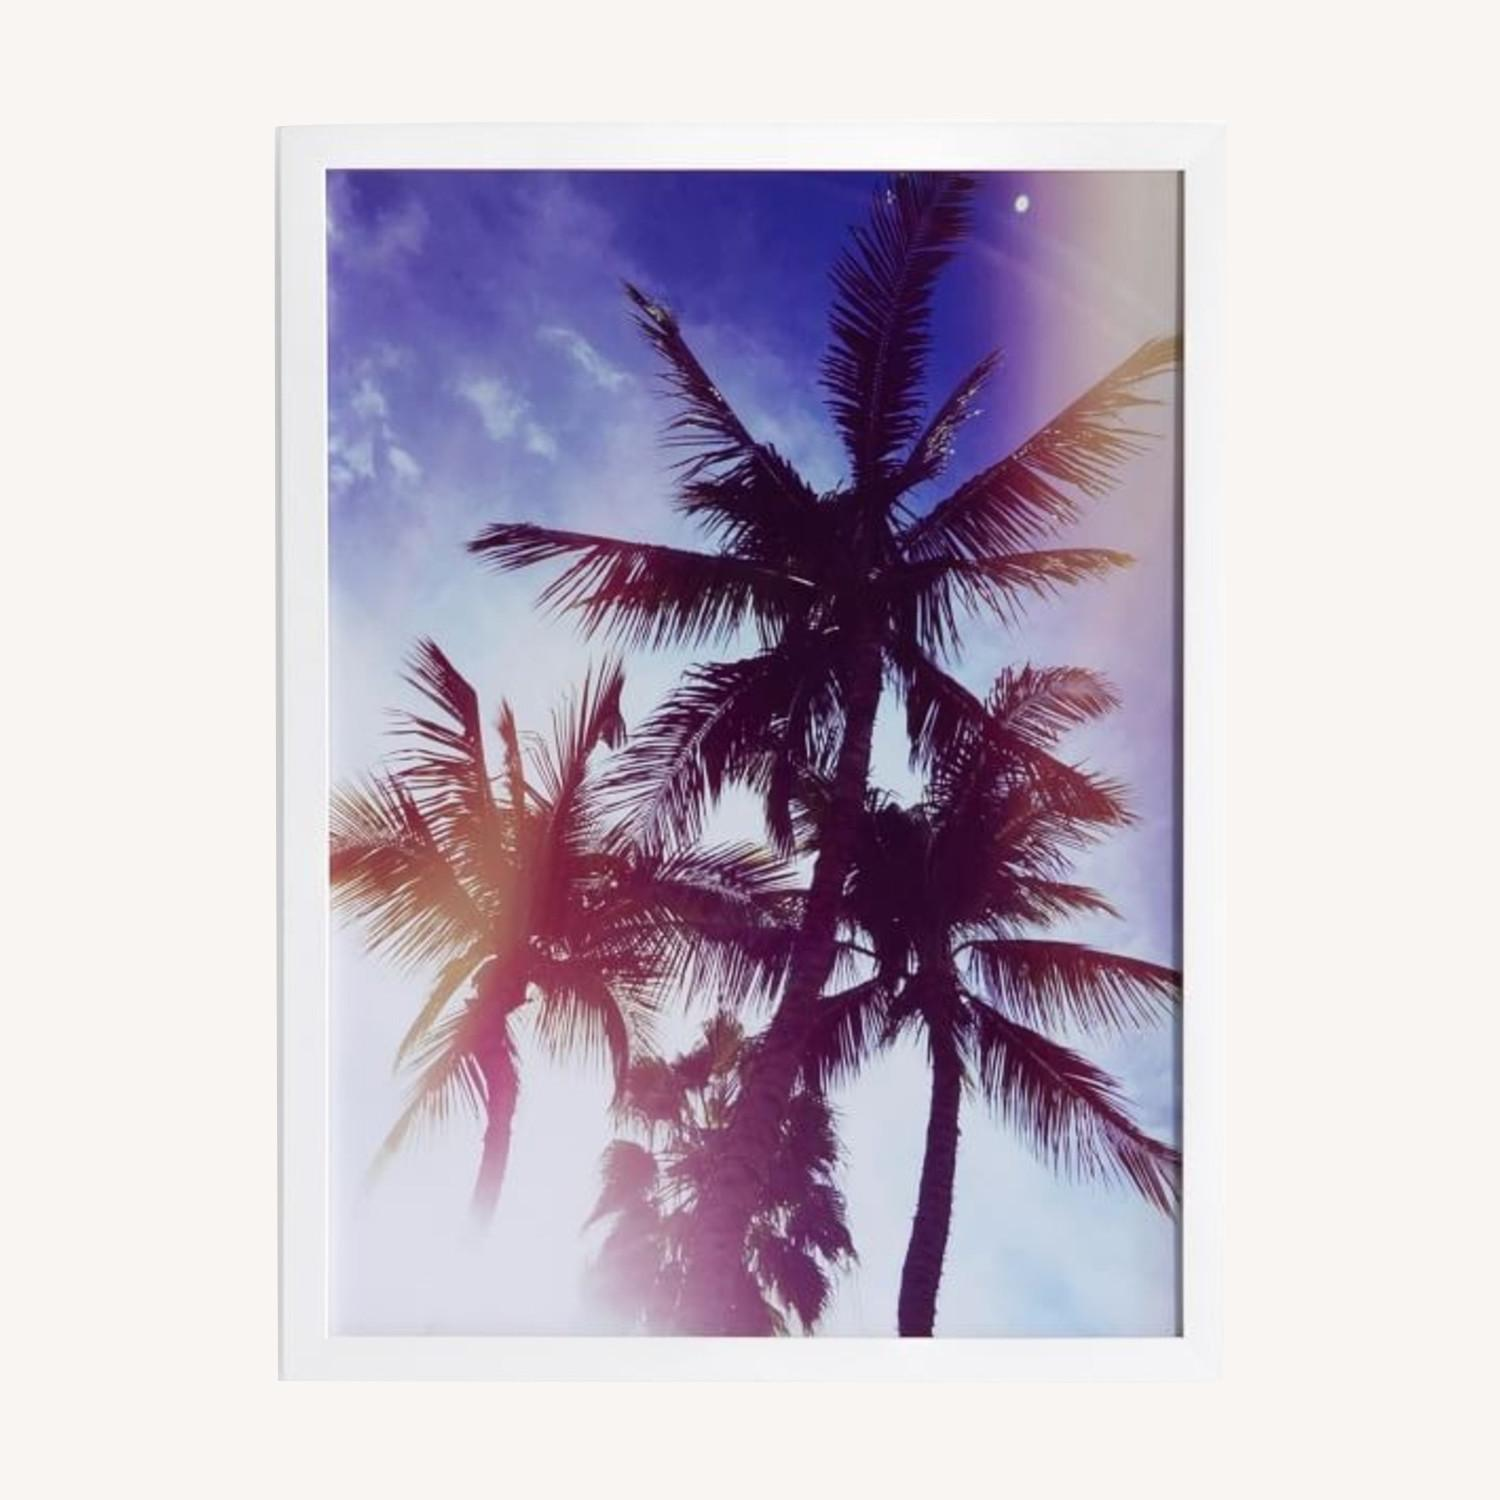 West Elm Palm Trees III by Erica Singleton - image-0